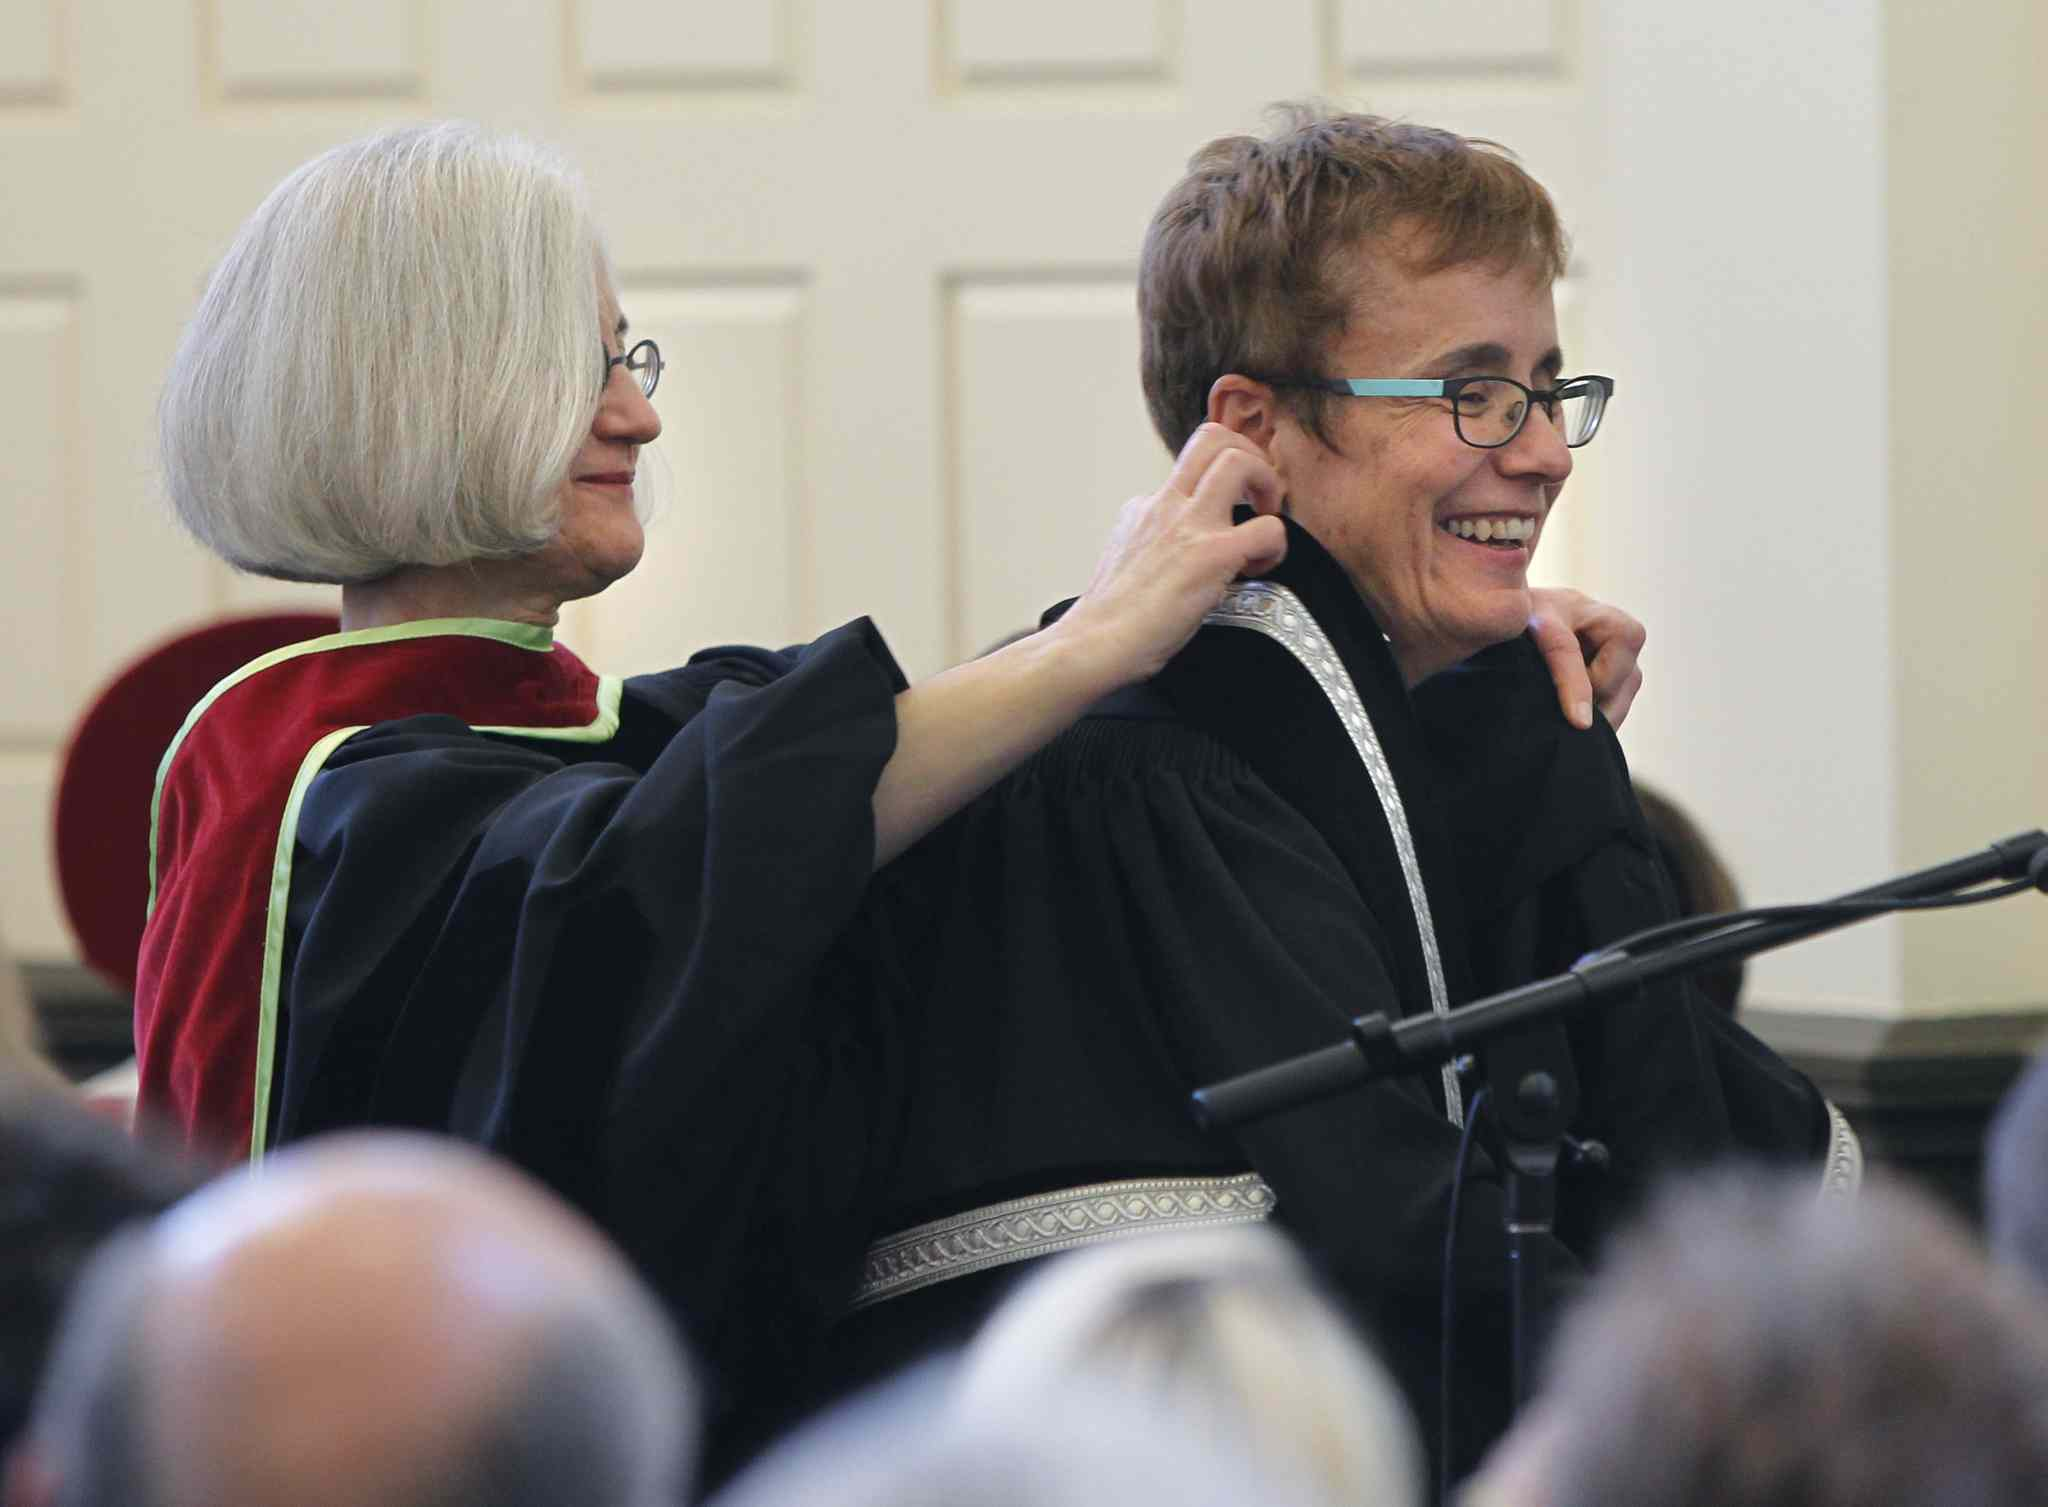 Wendy Josephson places the robe on Annette Trimbee, the new president of the University of Winnipeg, during an inauguration ceremony that featured dancers from the School of Contemporary Dance.